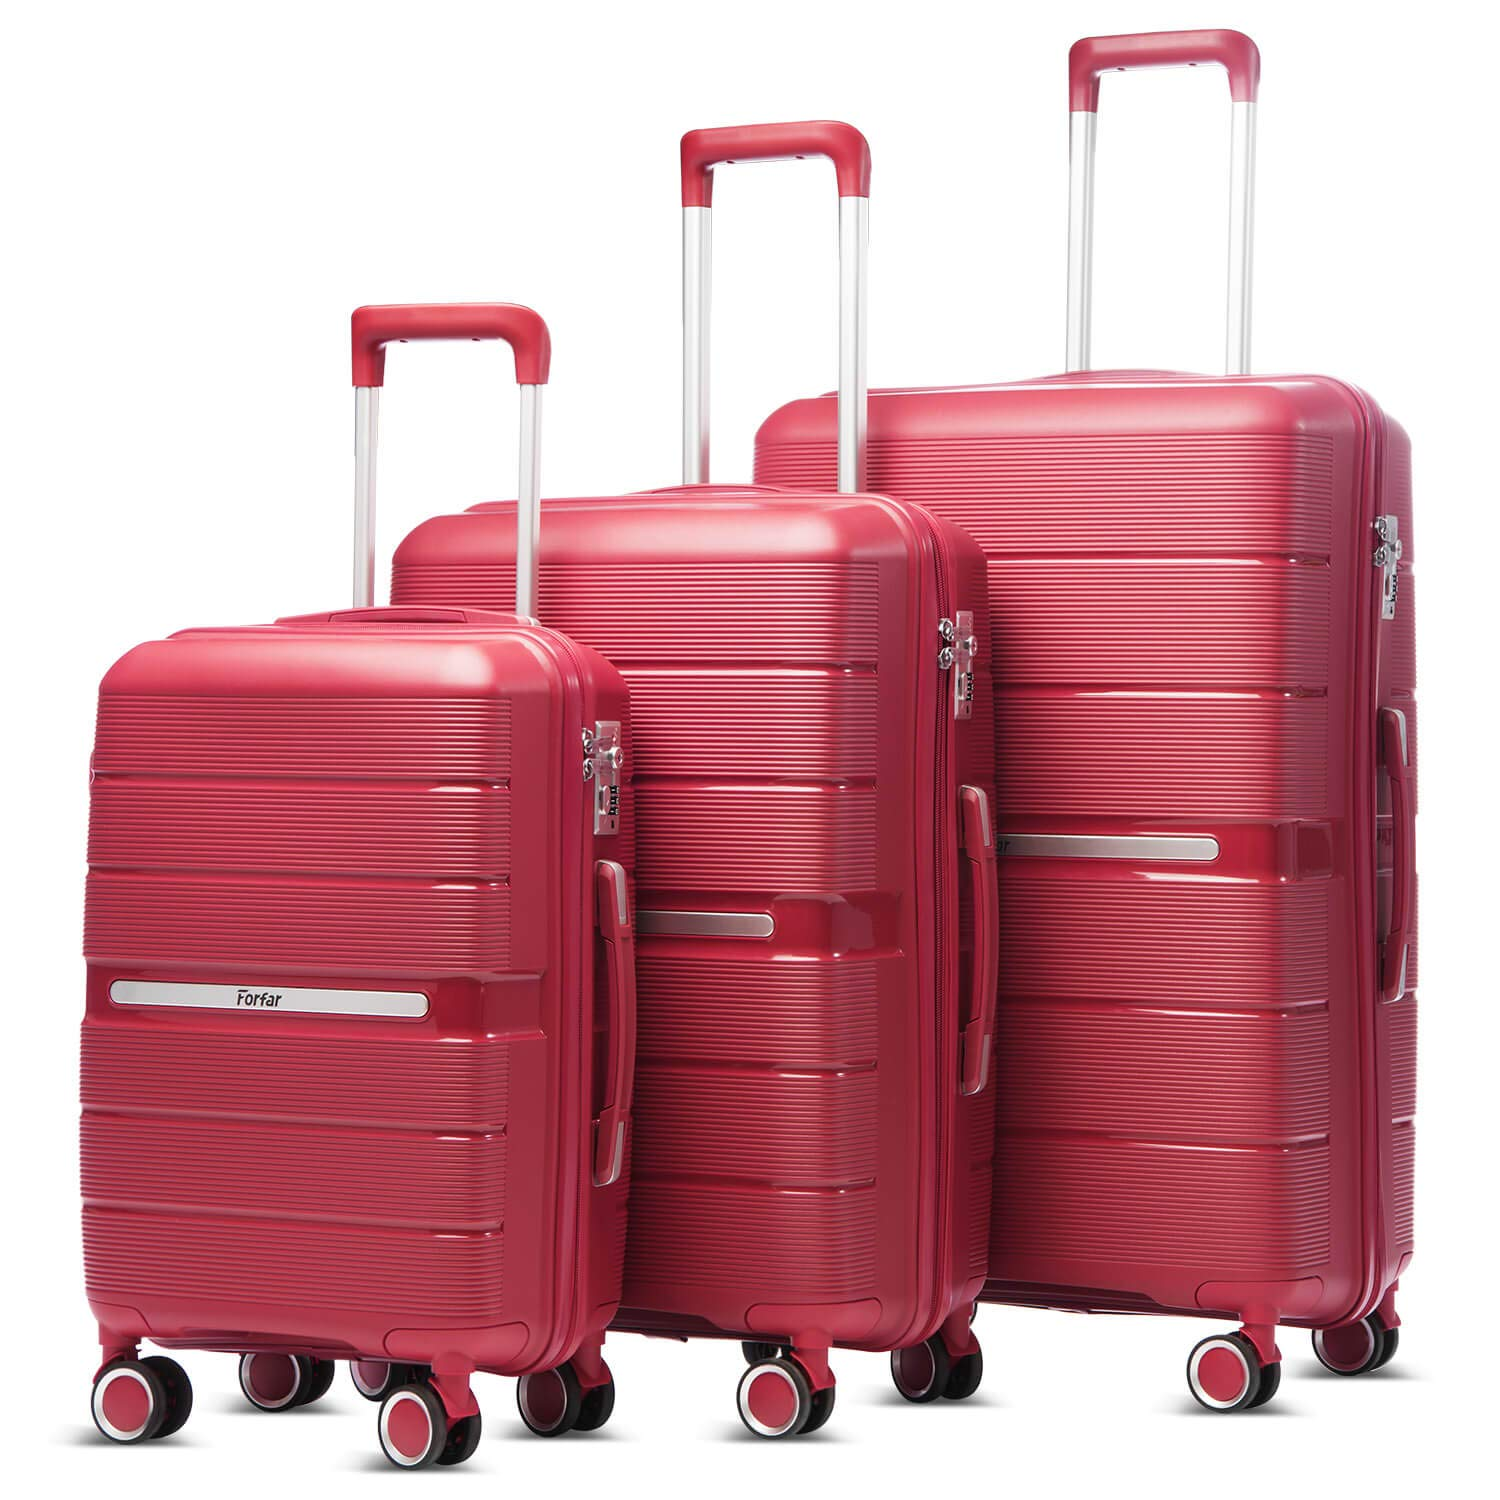 Forfar 3 Piece Luggage Sets with TSA Lock  Spinner Hardshell PP Lightweight Suitcases  20in 24in 28in Red